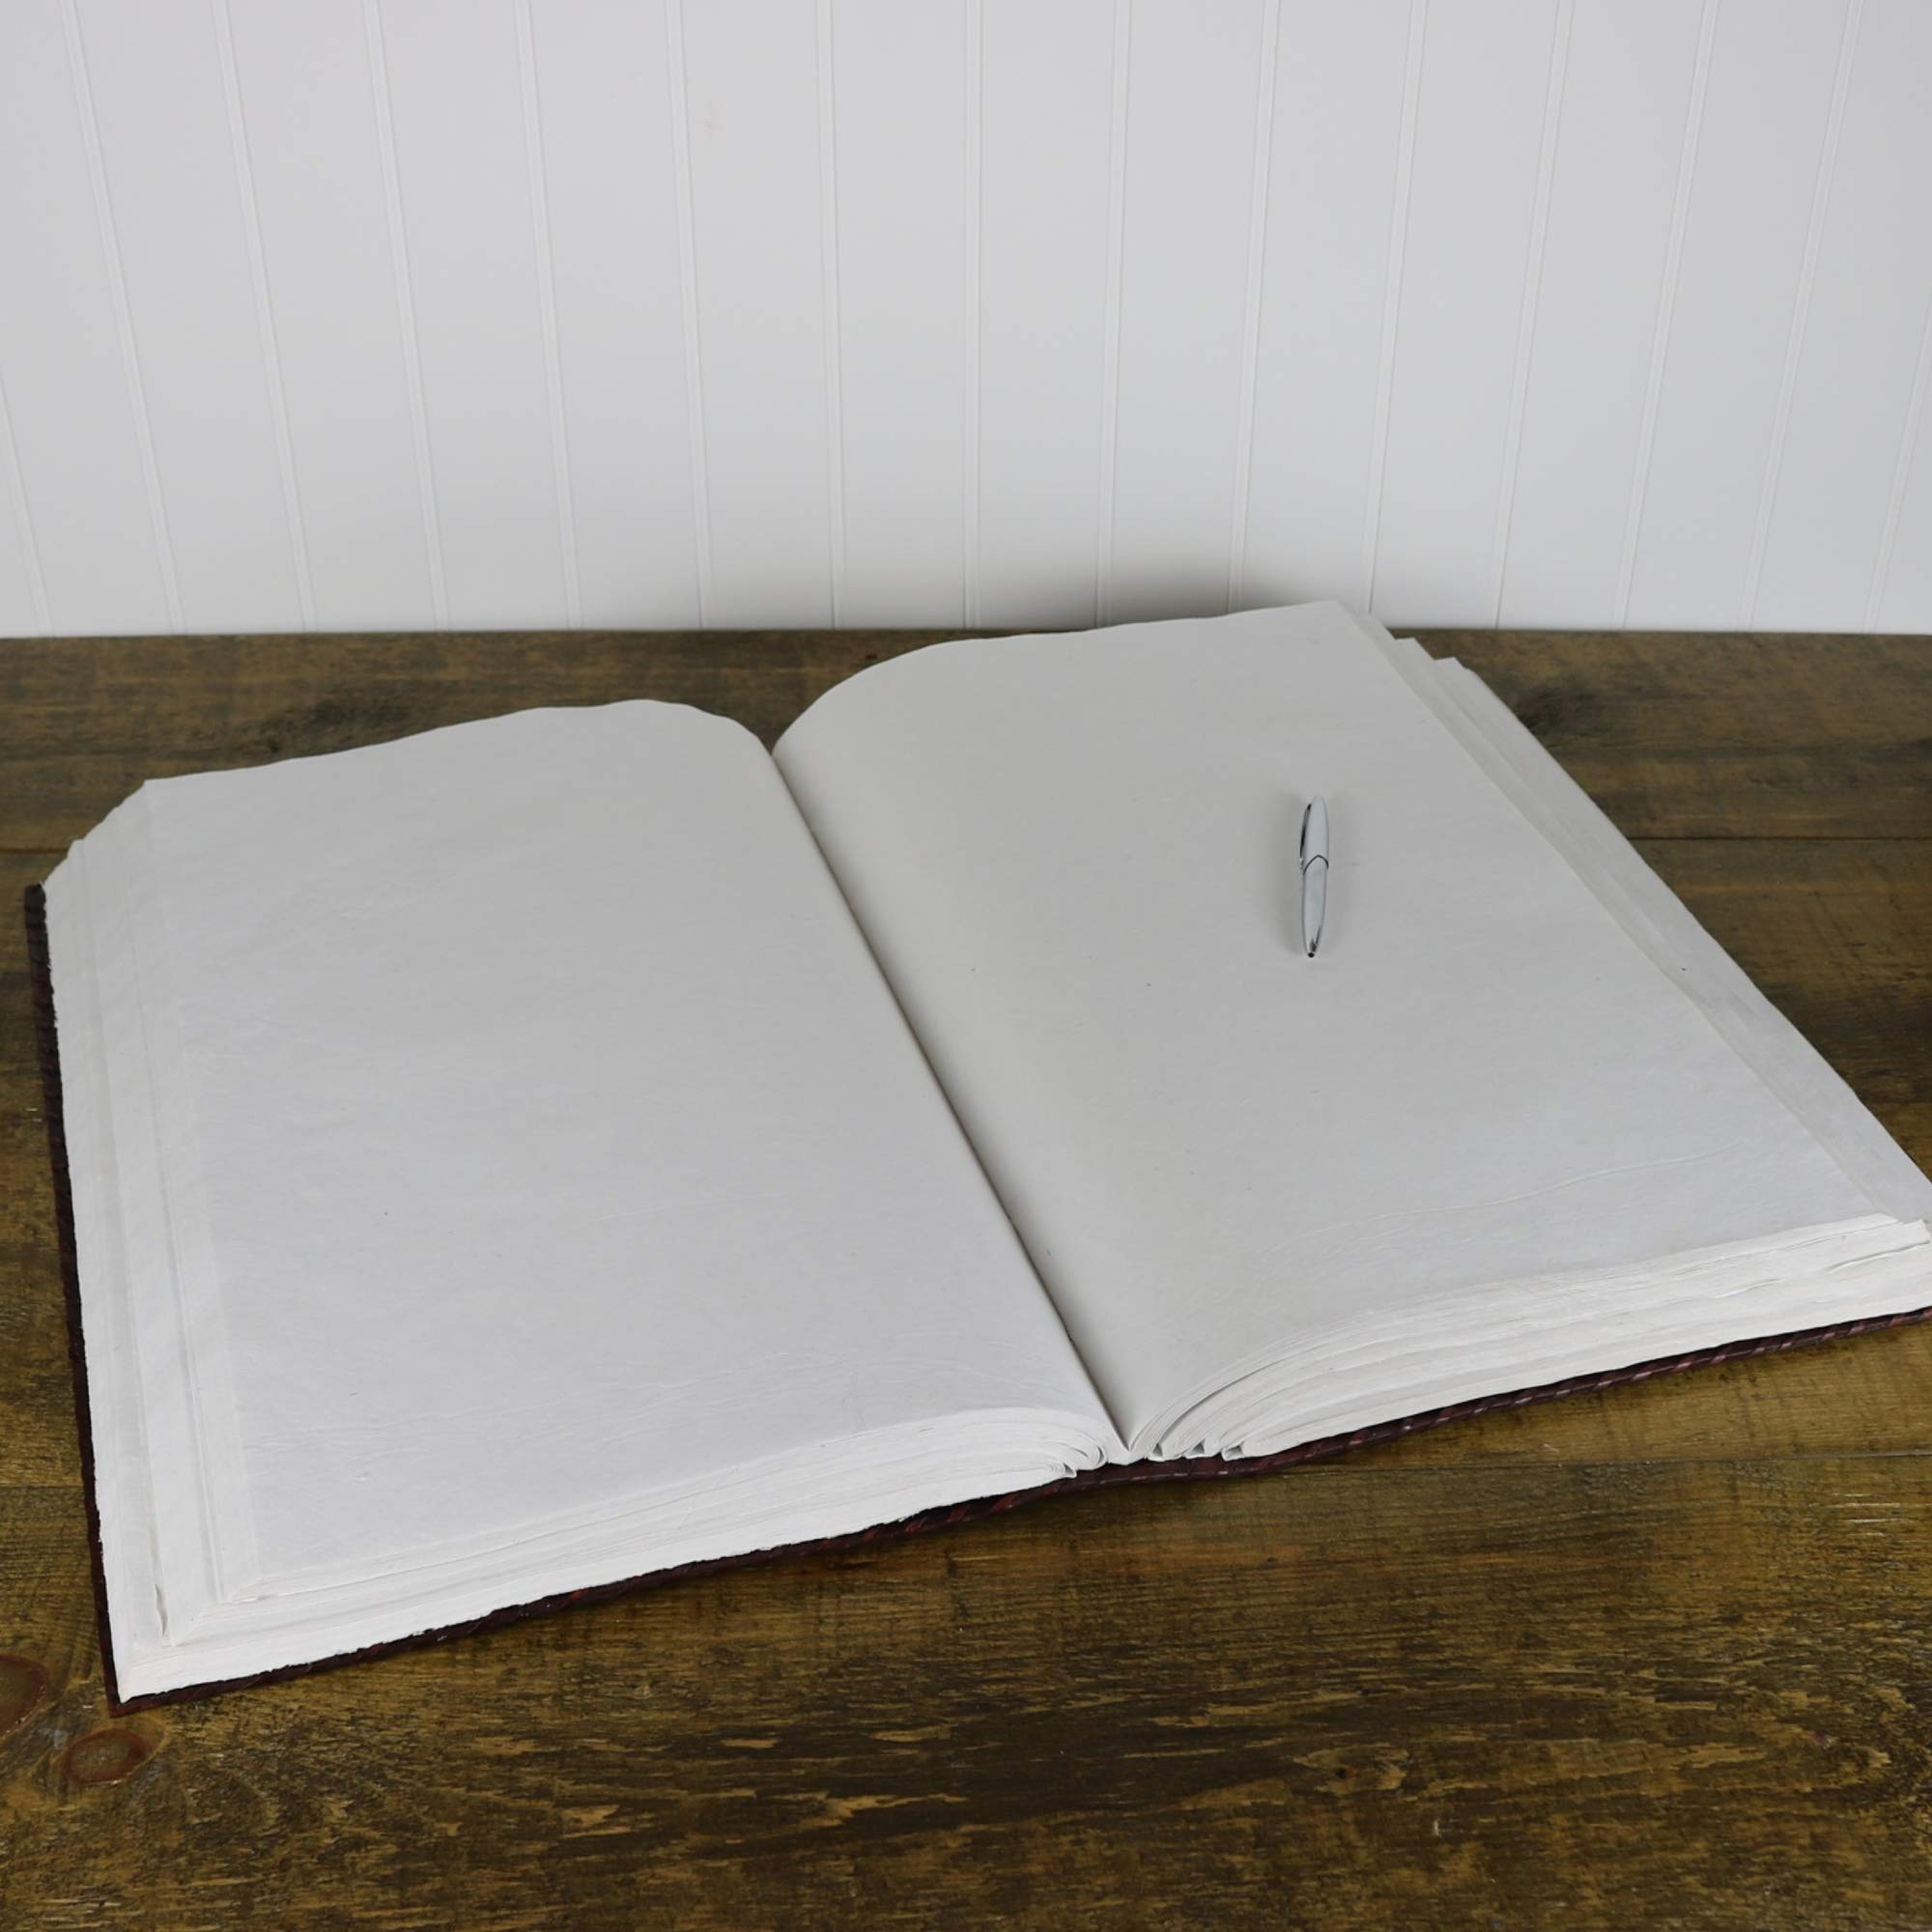 Seven Stone Leather Journal Handmade Notebook Unlined Blank 600 Pages 13 1/2 X 22 inches by  (Image #6)